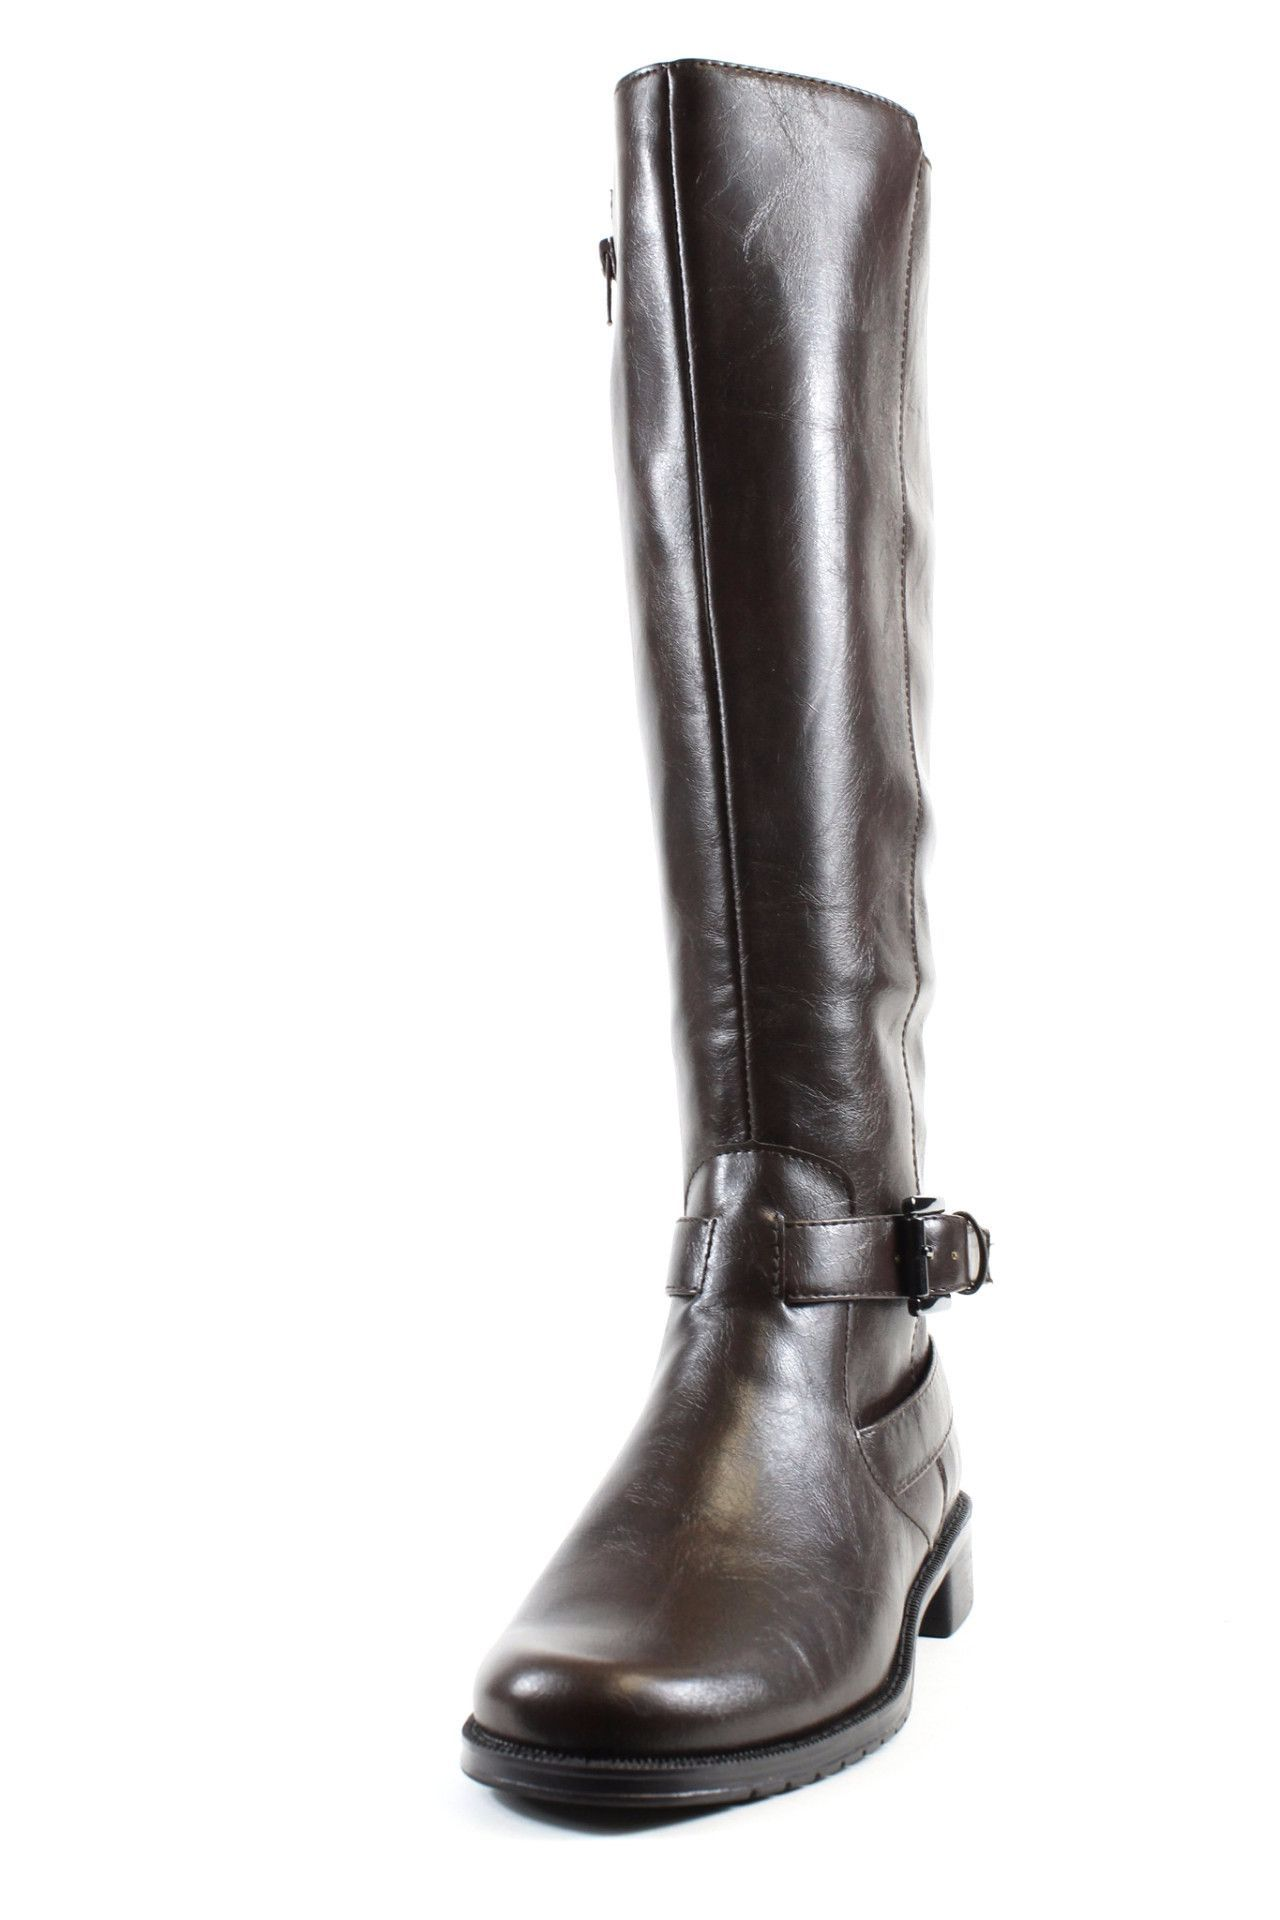 fe3a4de4e4a Aerosoles Ride Line Brown Tall Boots